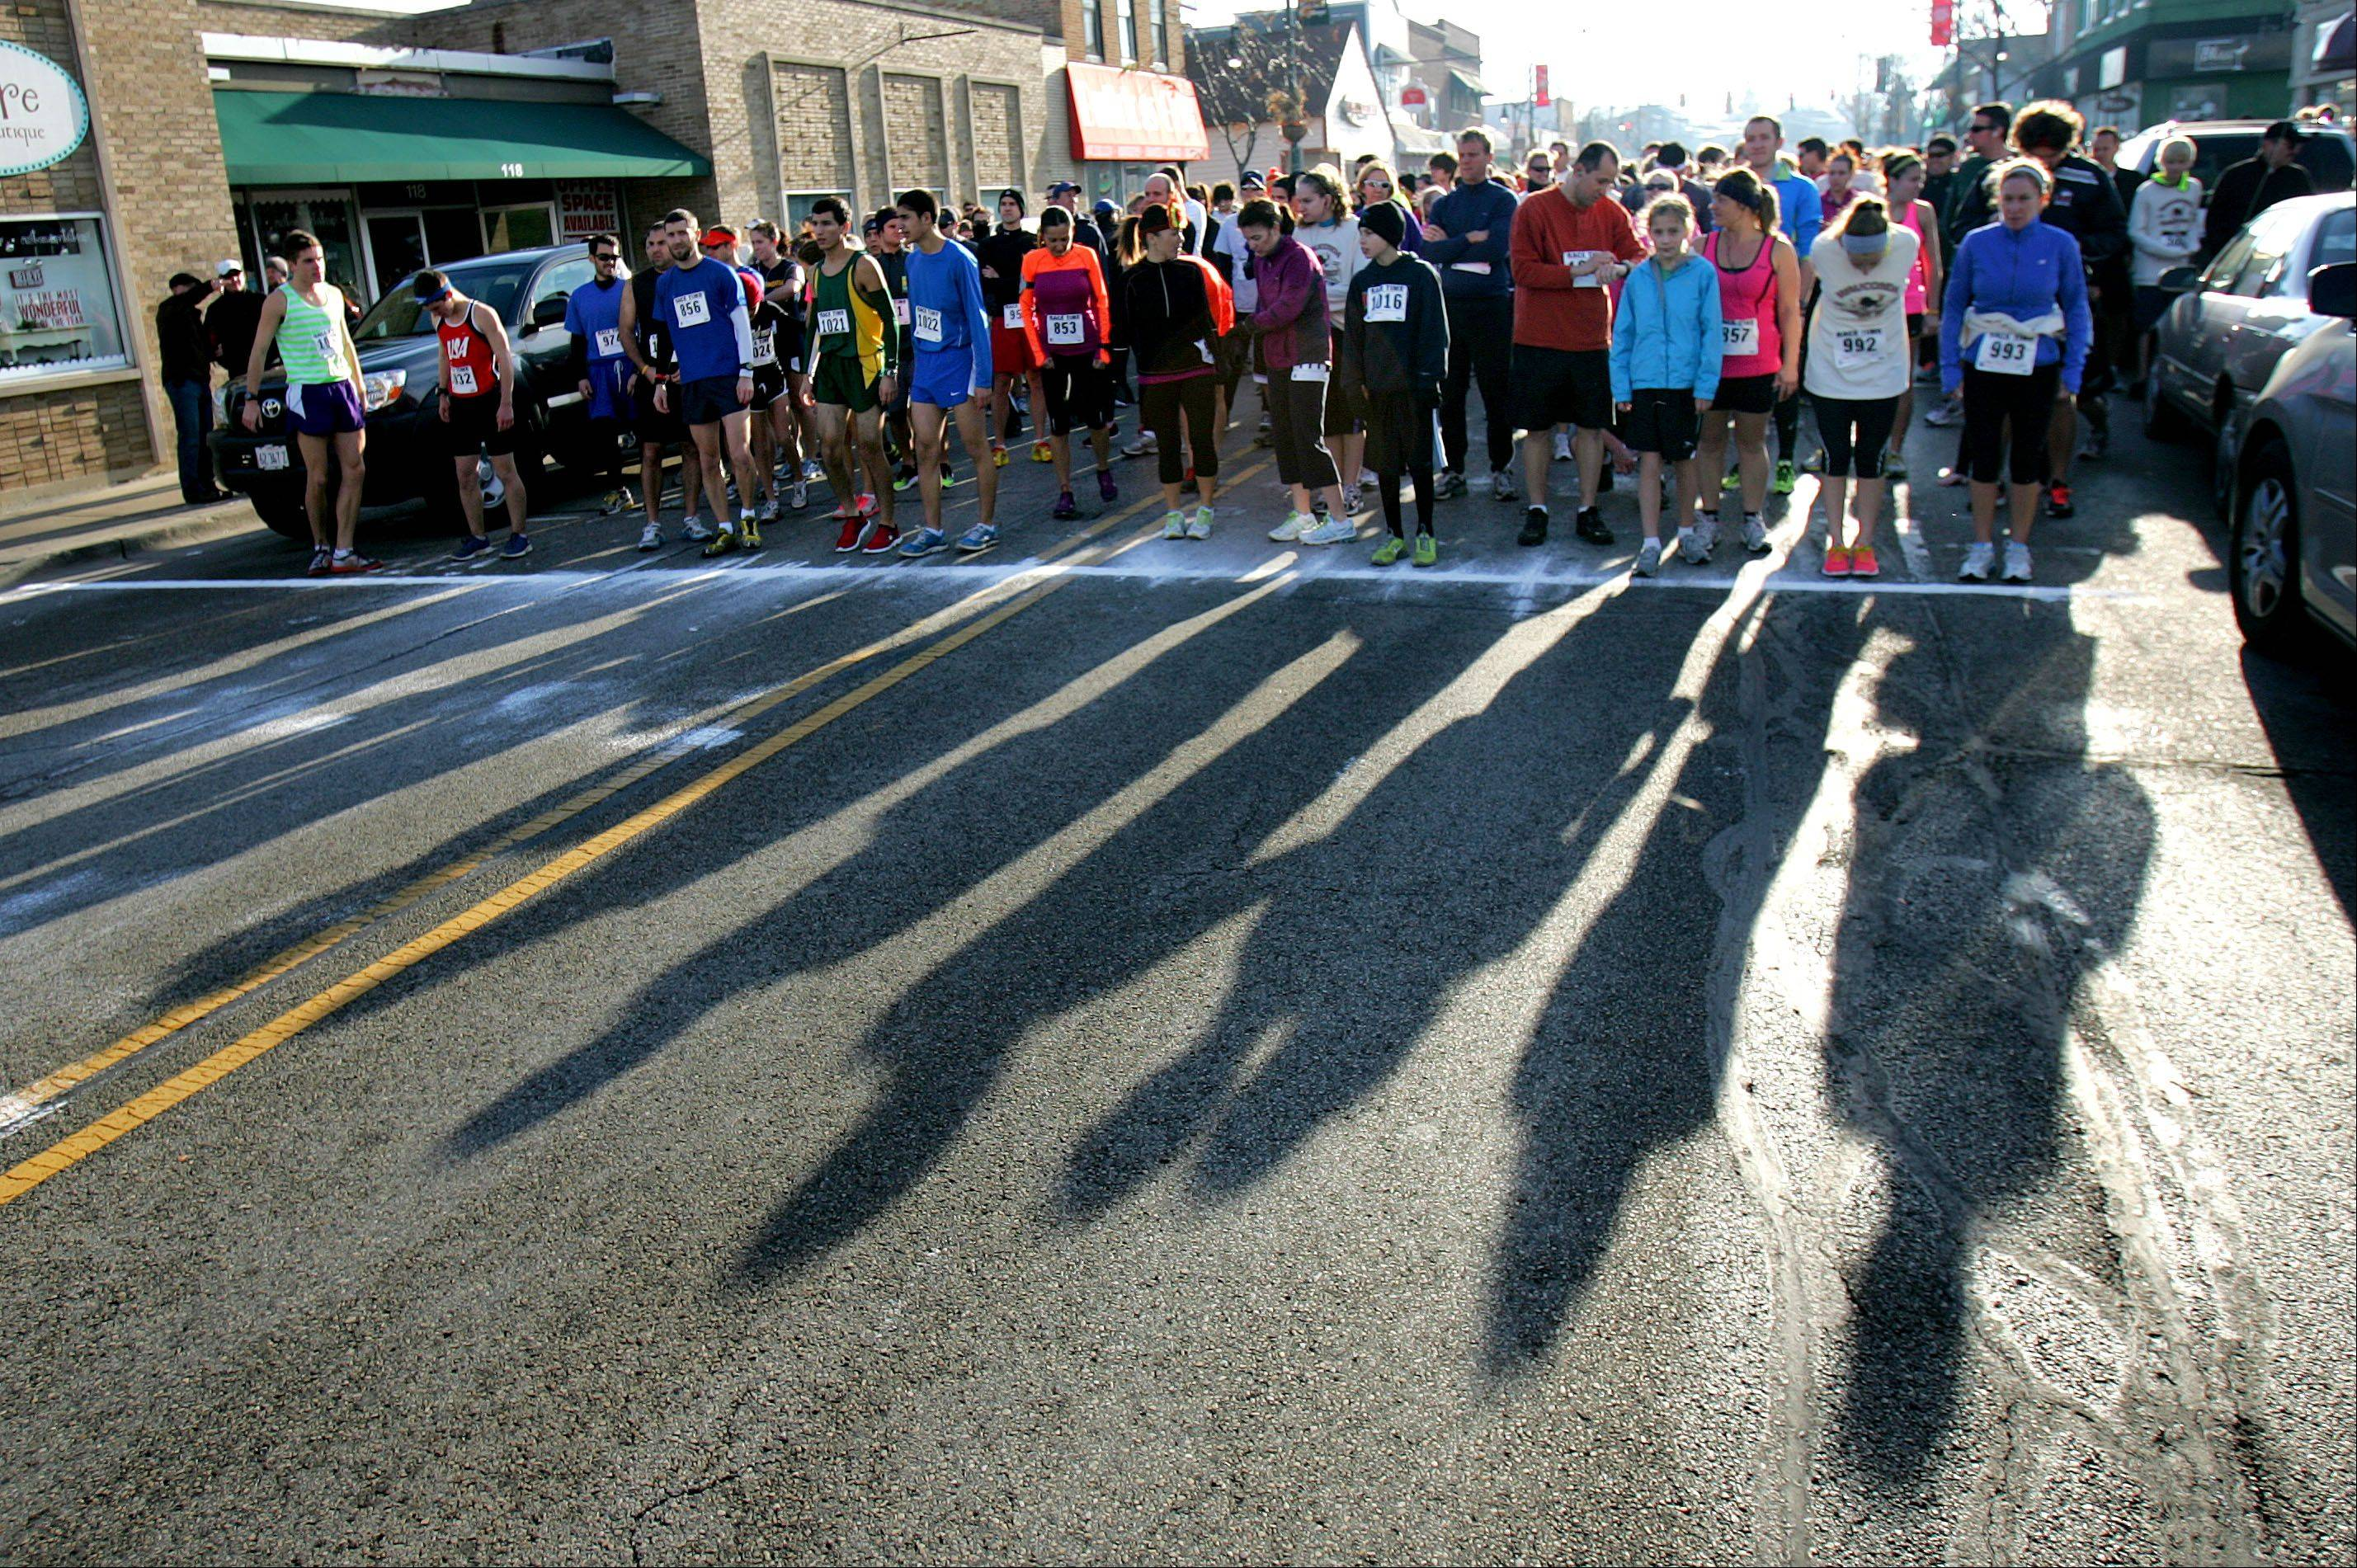 This was the view as the runners prepared to start the 2012 Wauconda Turkey Trot. This year�s 4-mile race is set for Nov. 28.